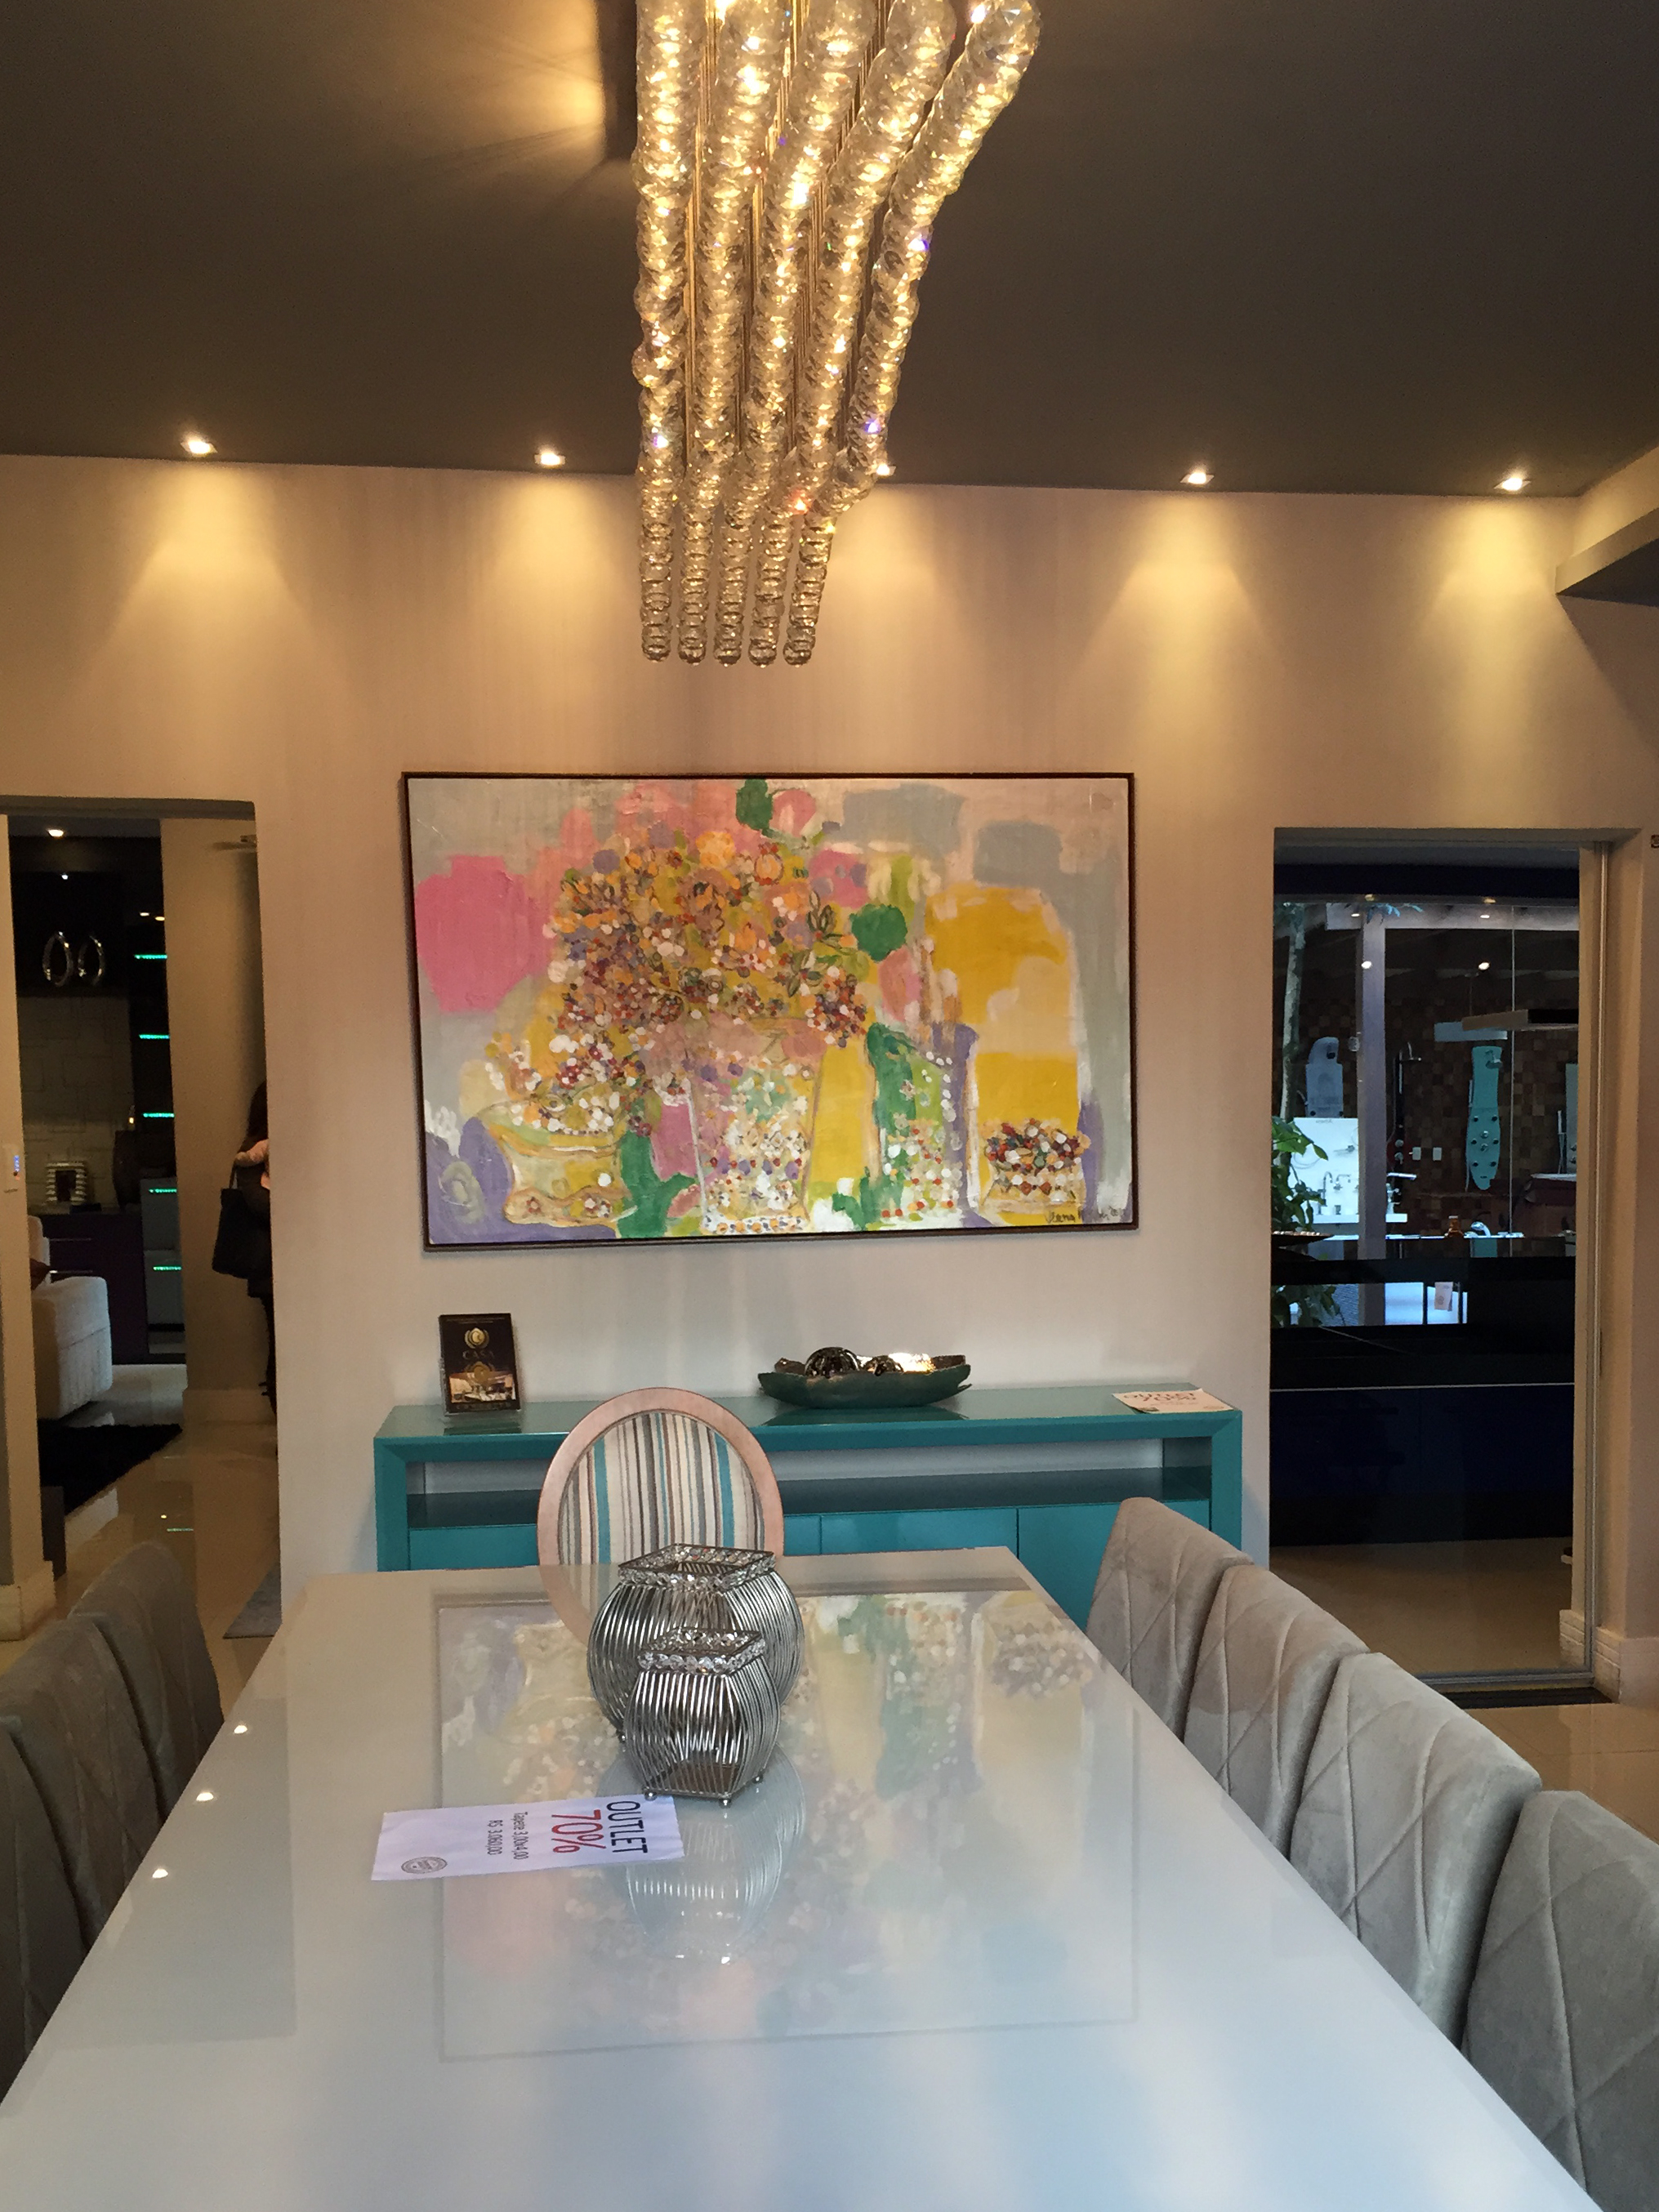 This dining room was to die for! Glossy bright furniture with also colourful wall art and a super chandelier (which can be made to fit by the way)